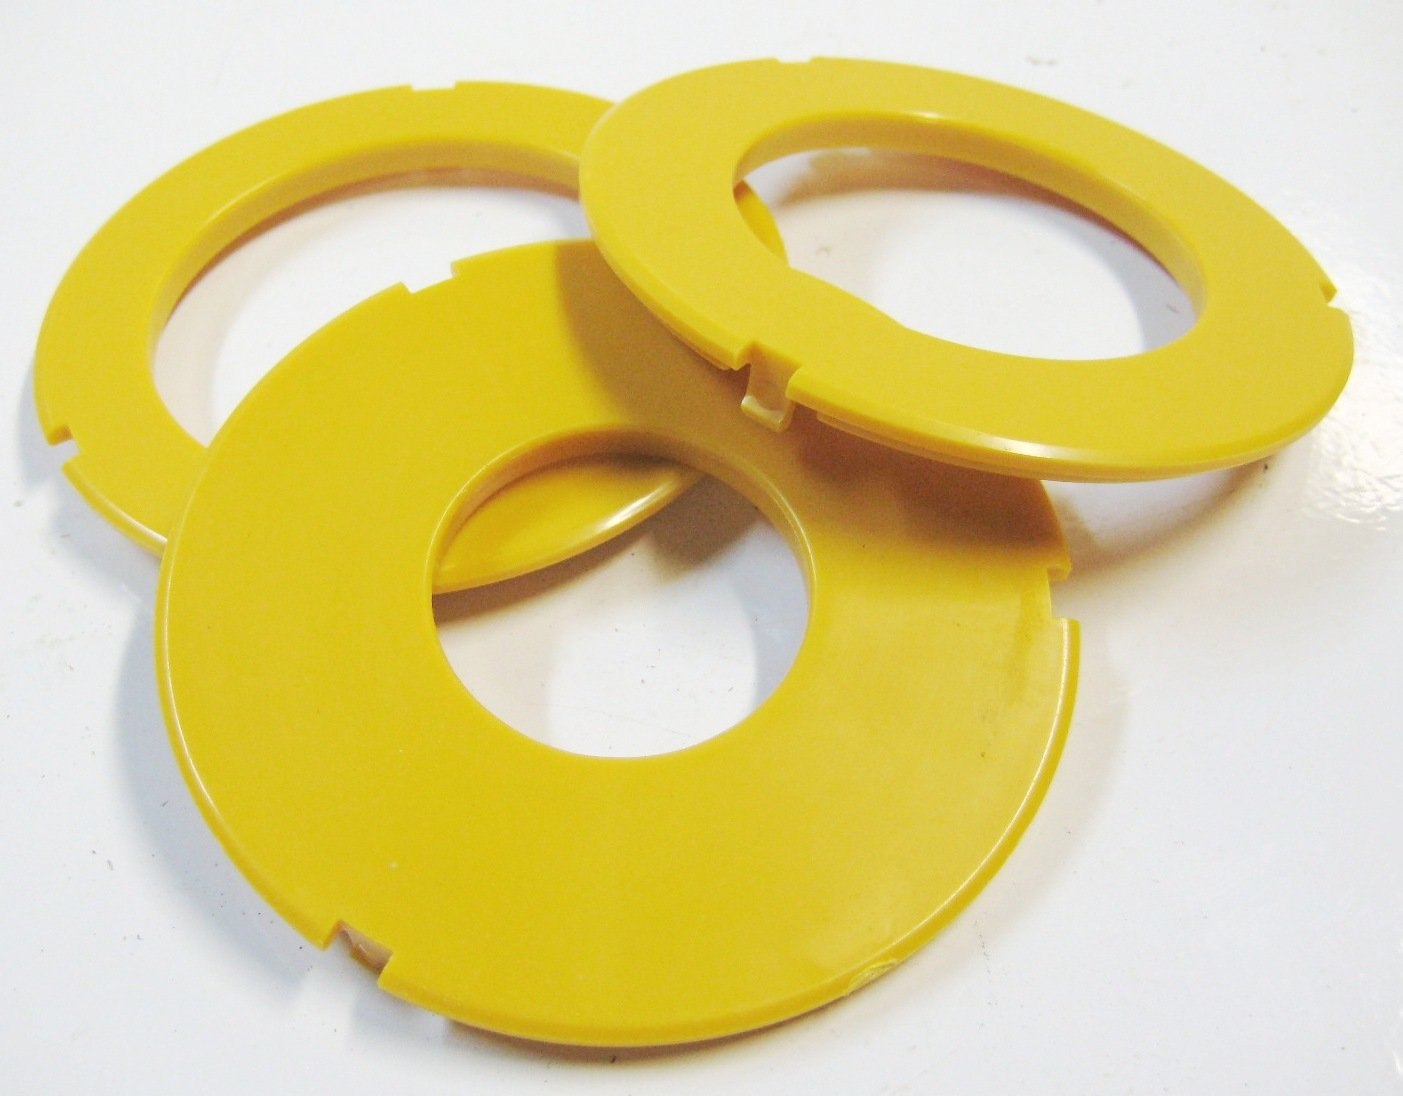 Router Table Insert Rings 3'' OD Fits Sears Craftsman Ryobi & Others, Set of 3 by Or1More